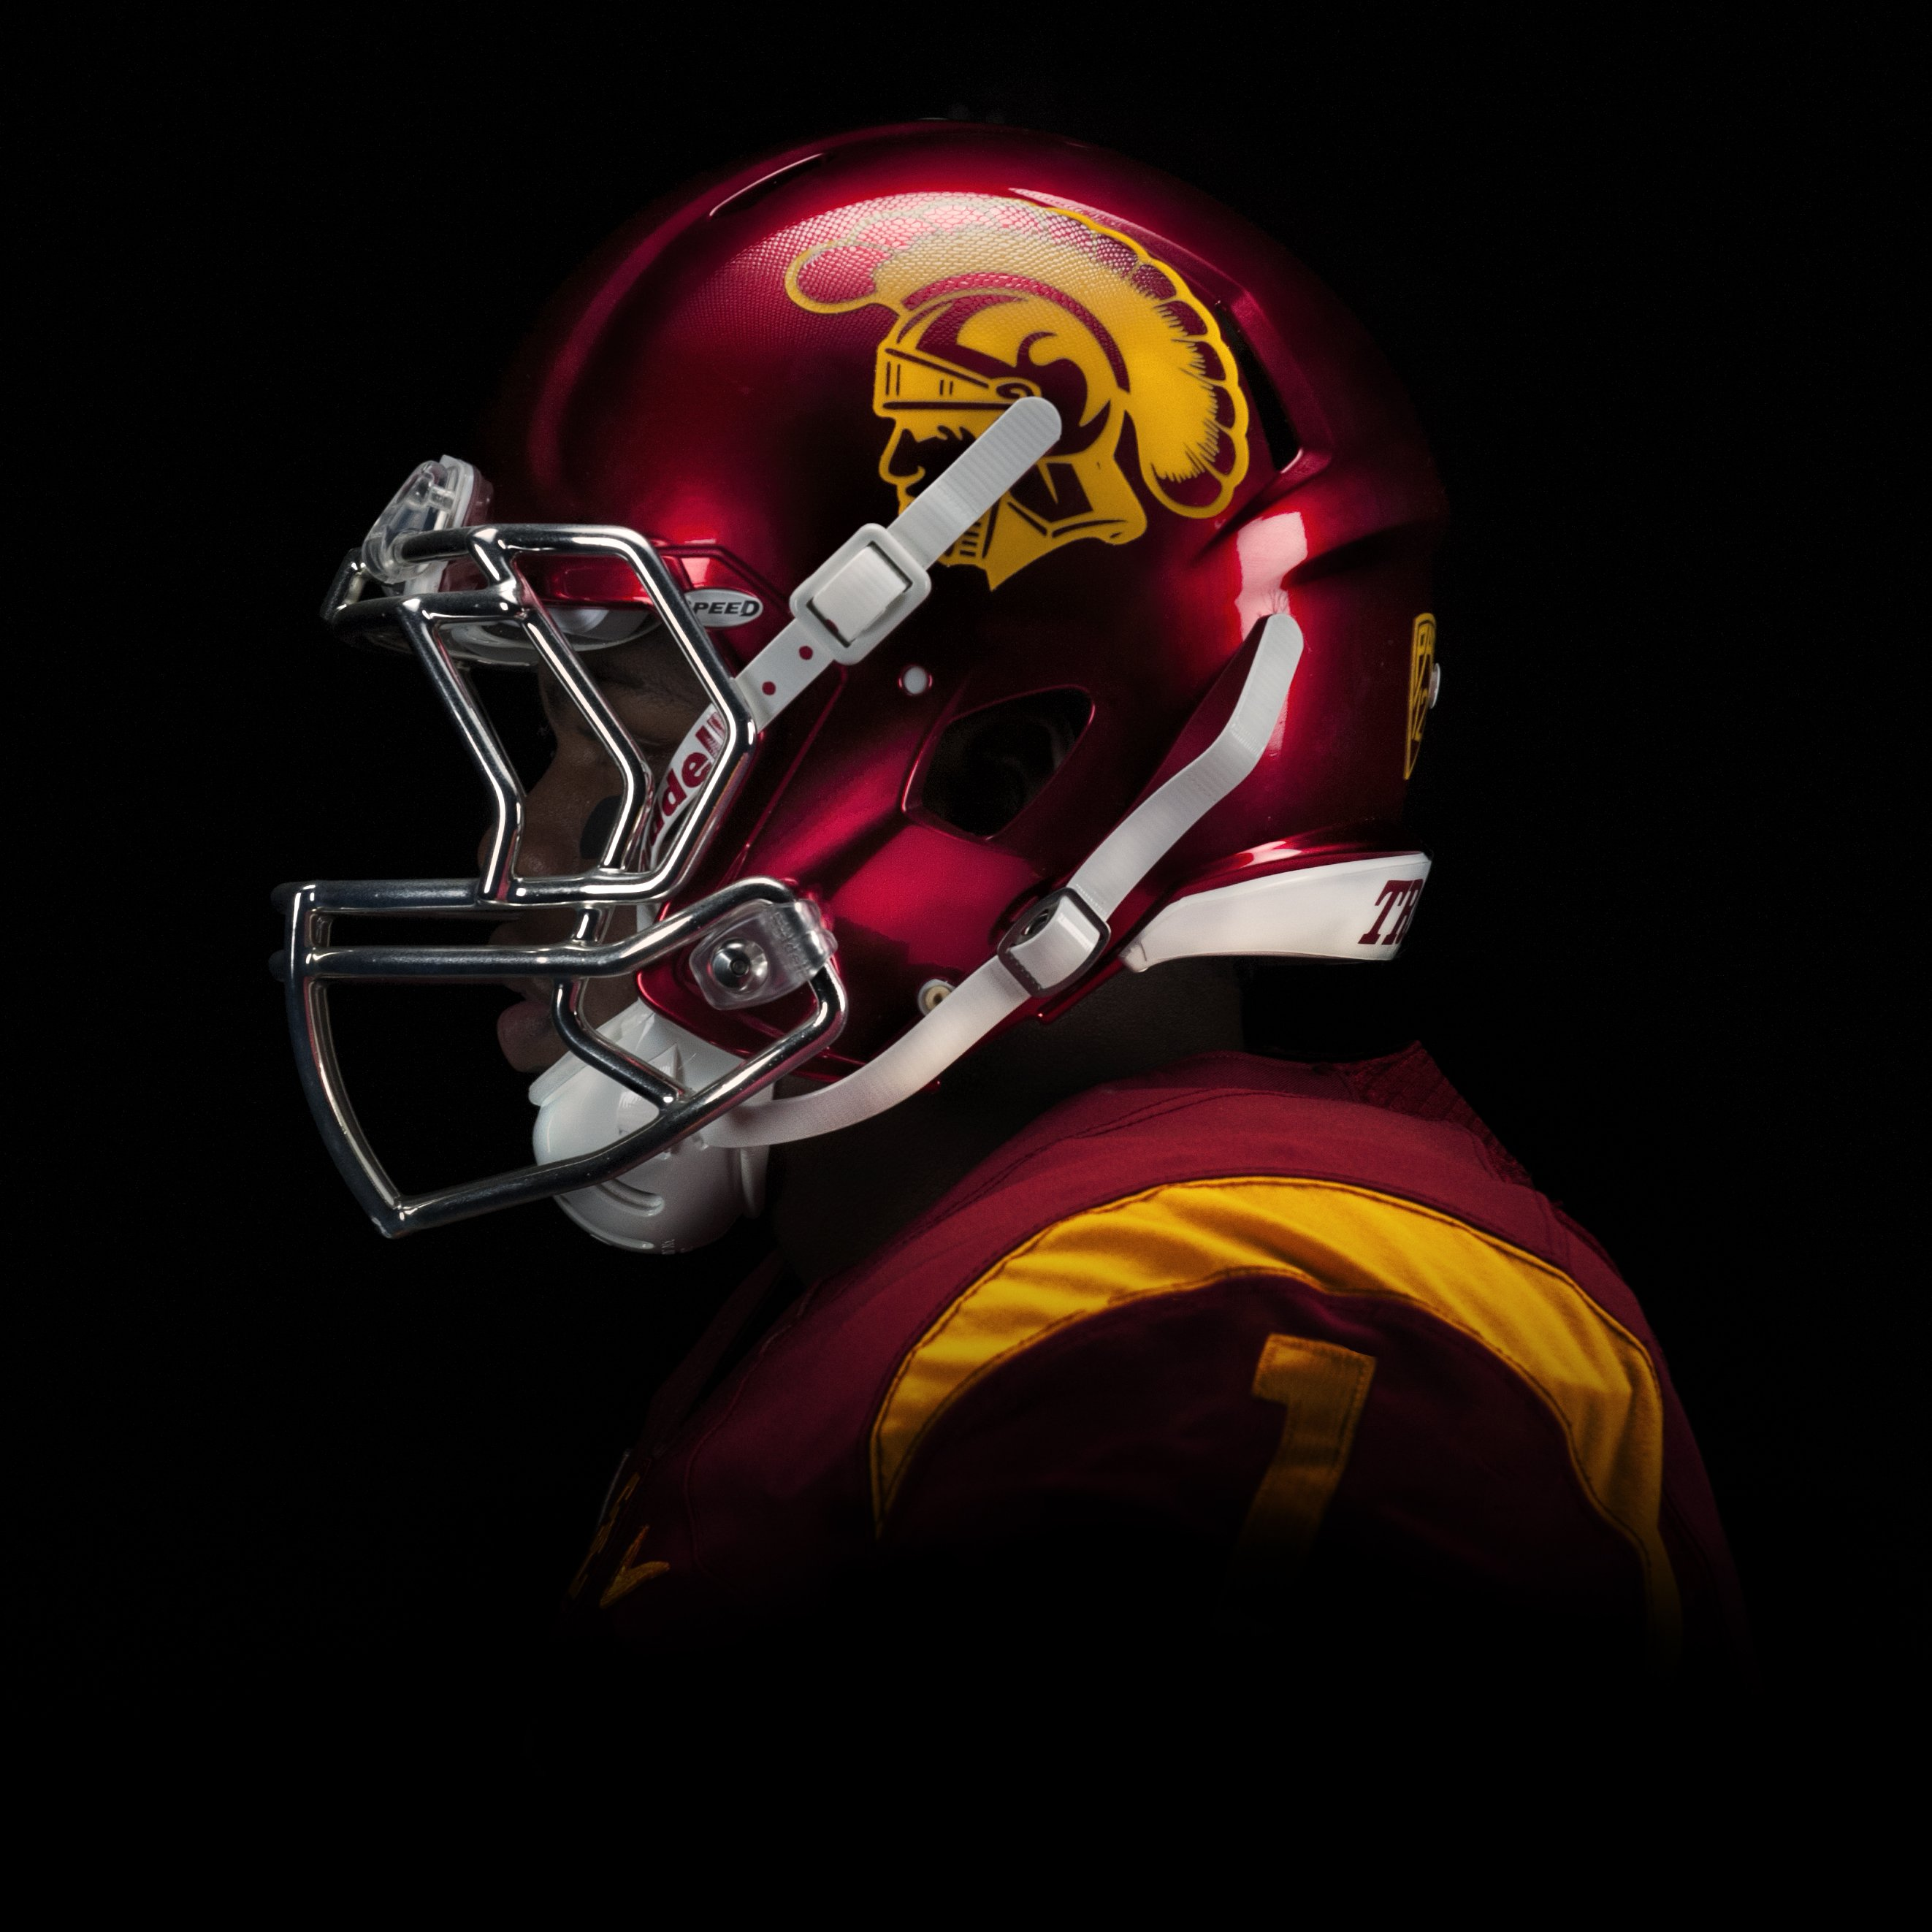 USC TROJANS college football wallpaper 2645x2645 2645x2645